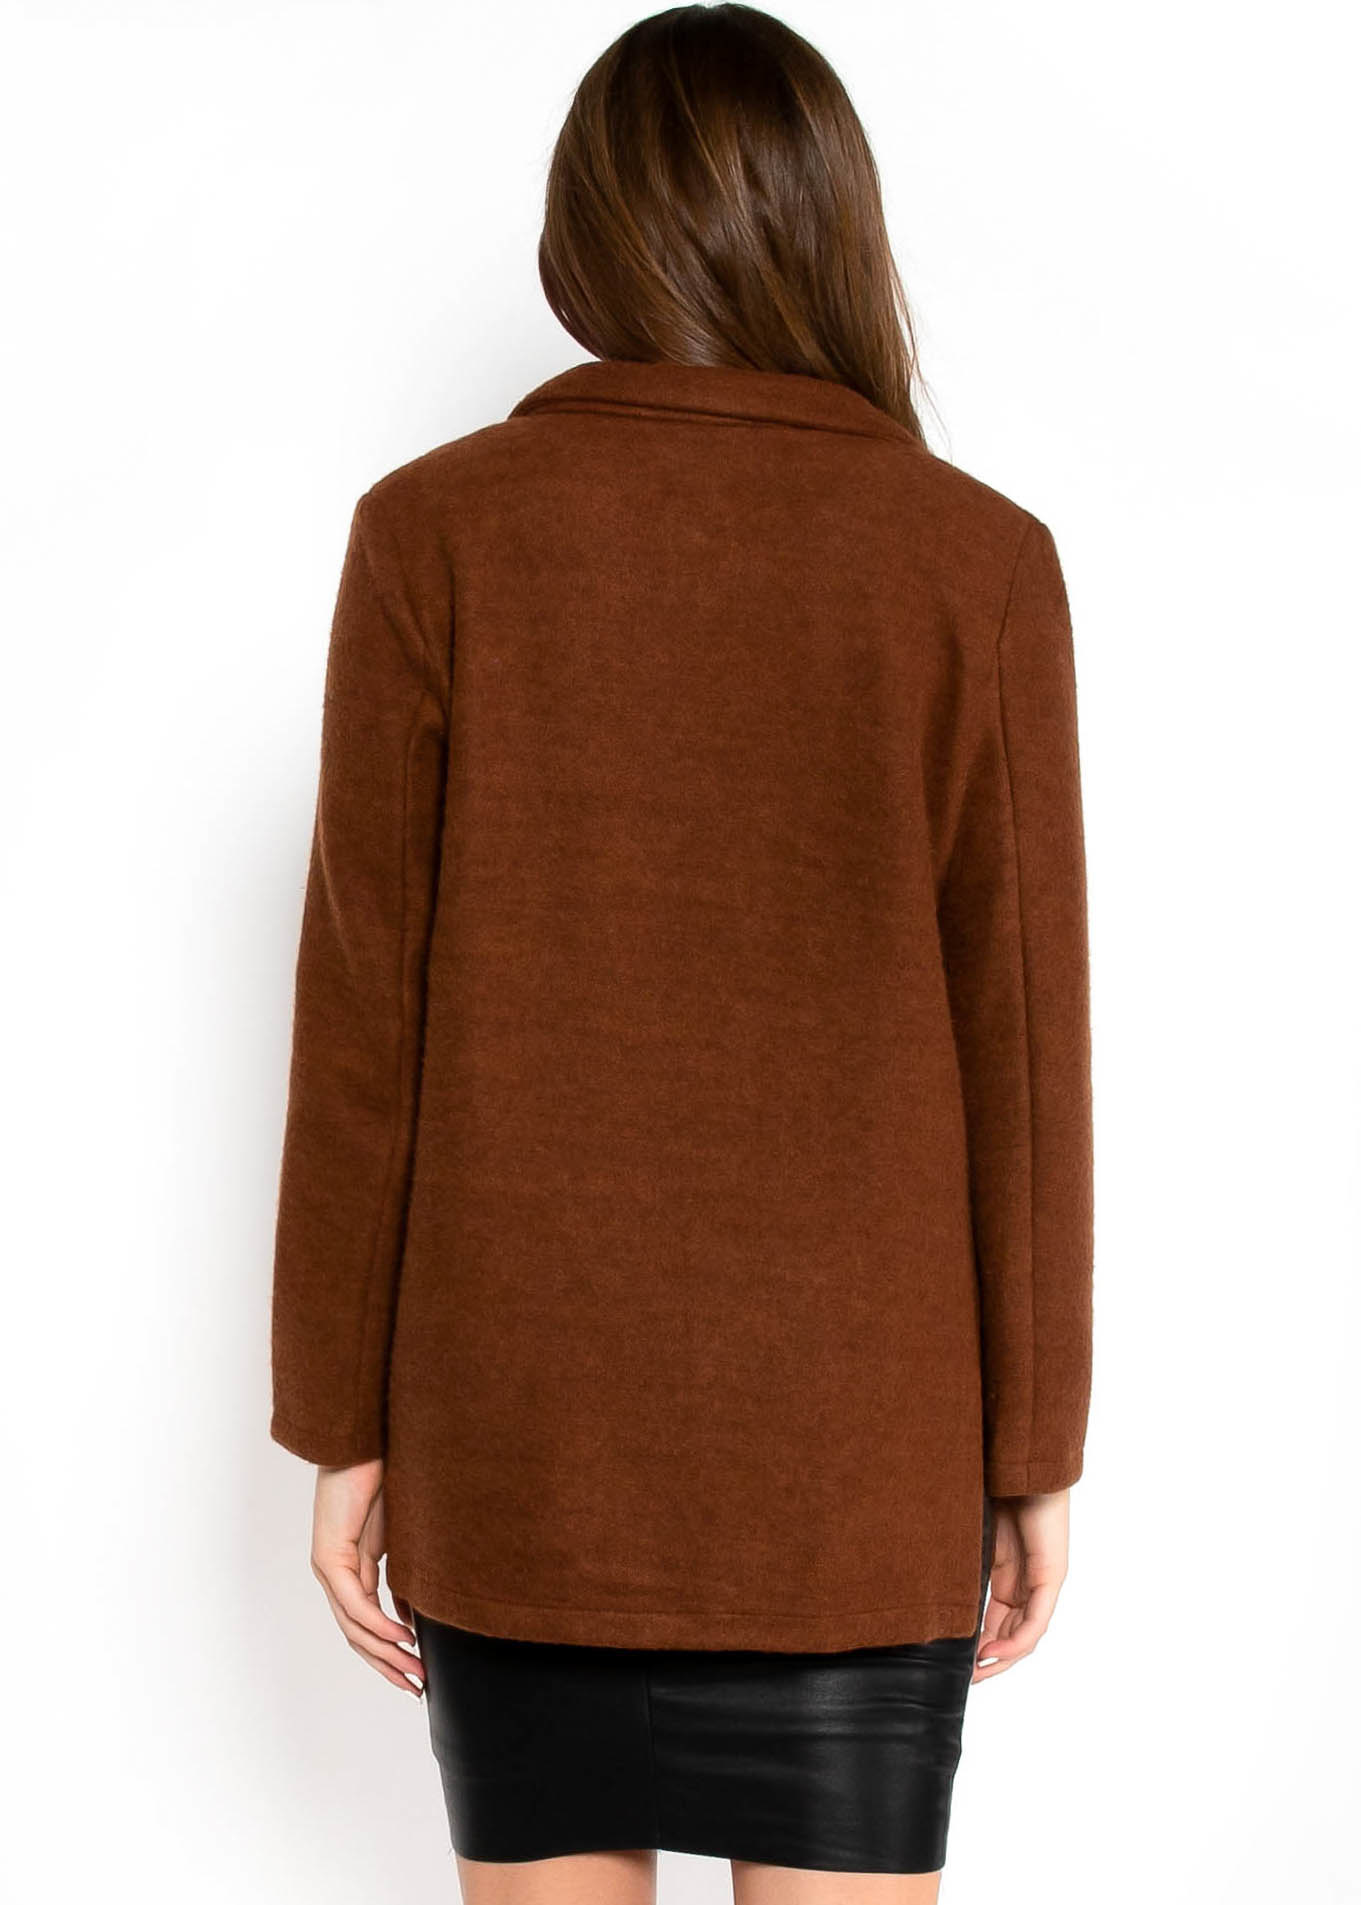 LEAVES CHANGING BROWN CARDIGAN